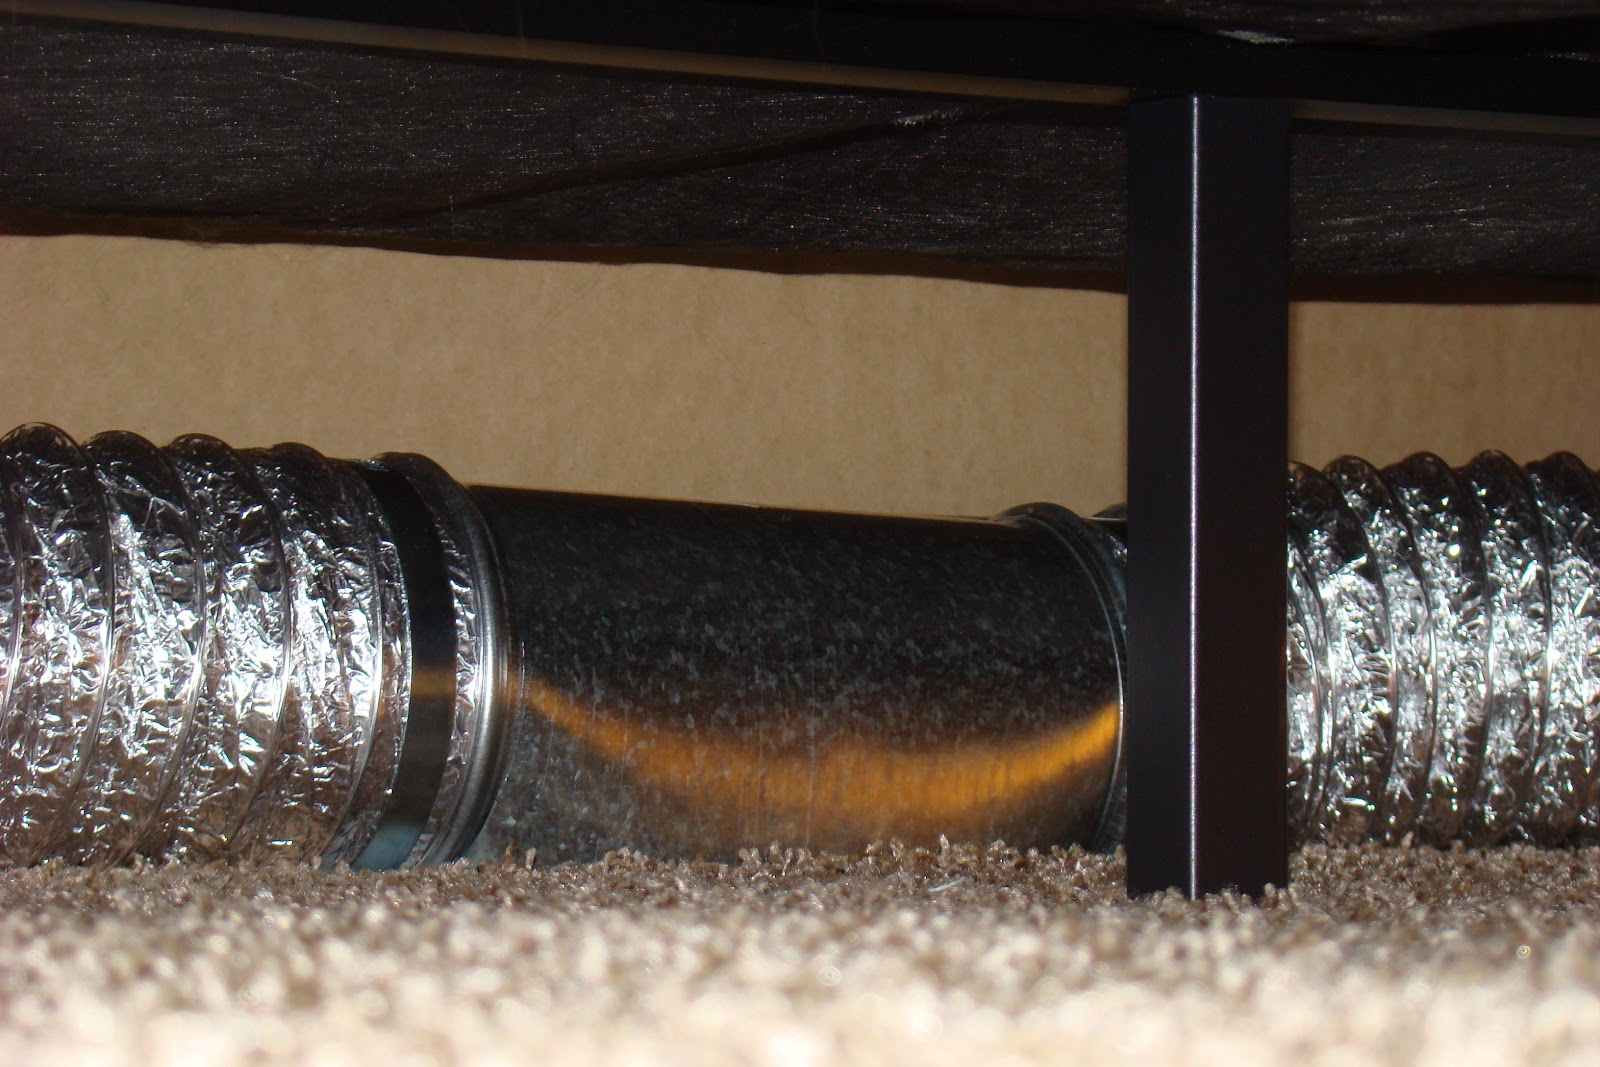 The Problem: The Furniture Covers The Only Air Vent In The Room. The  Solution: Redirecting Air Via Tubing And A T Vent.